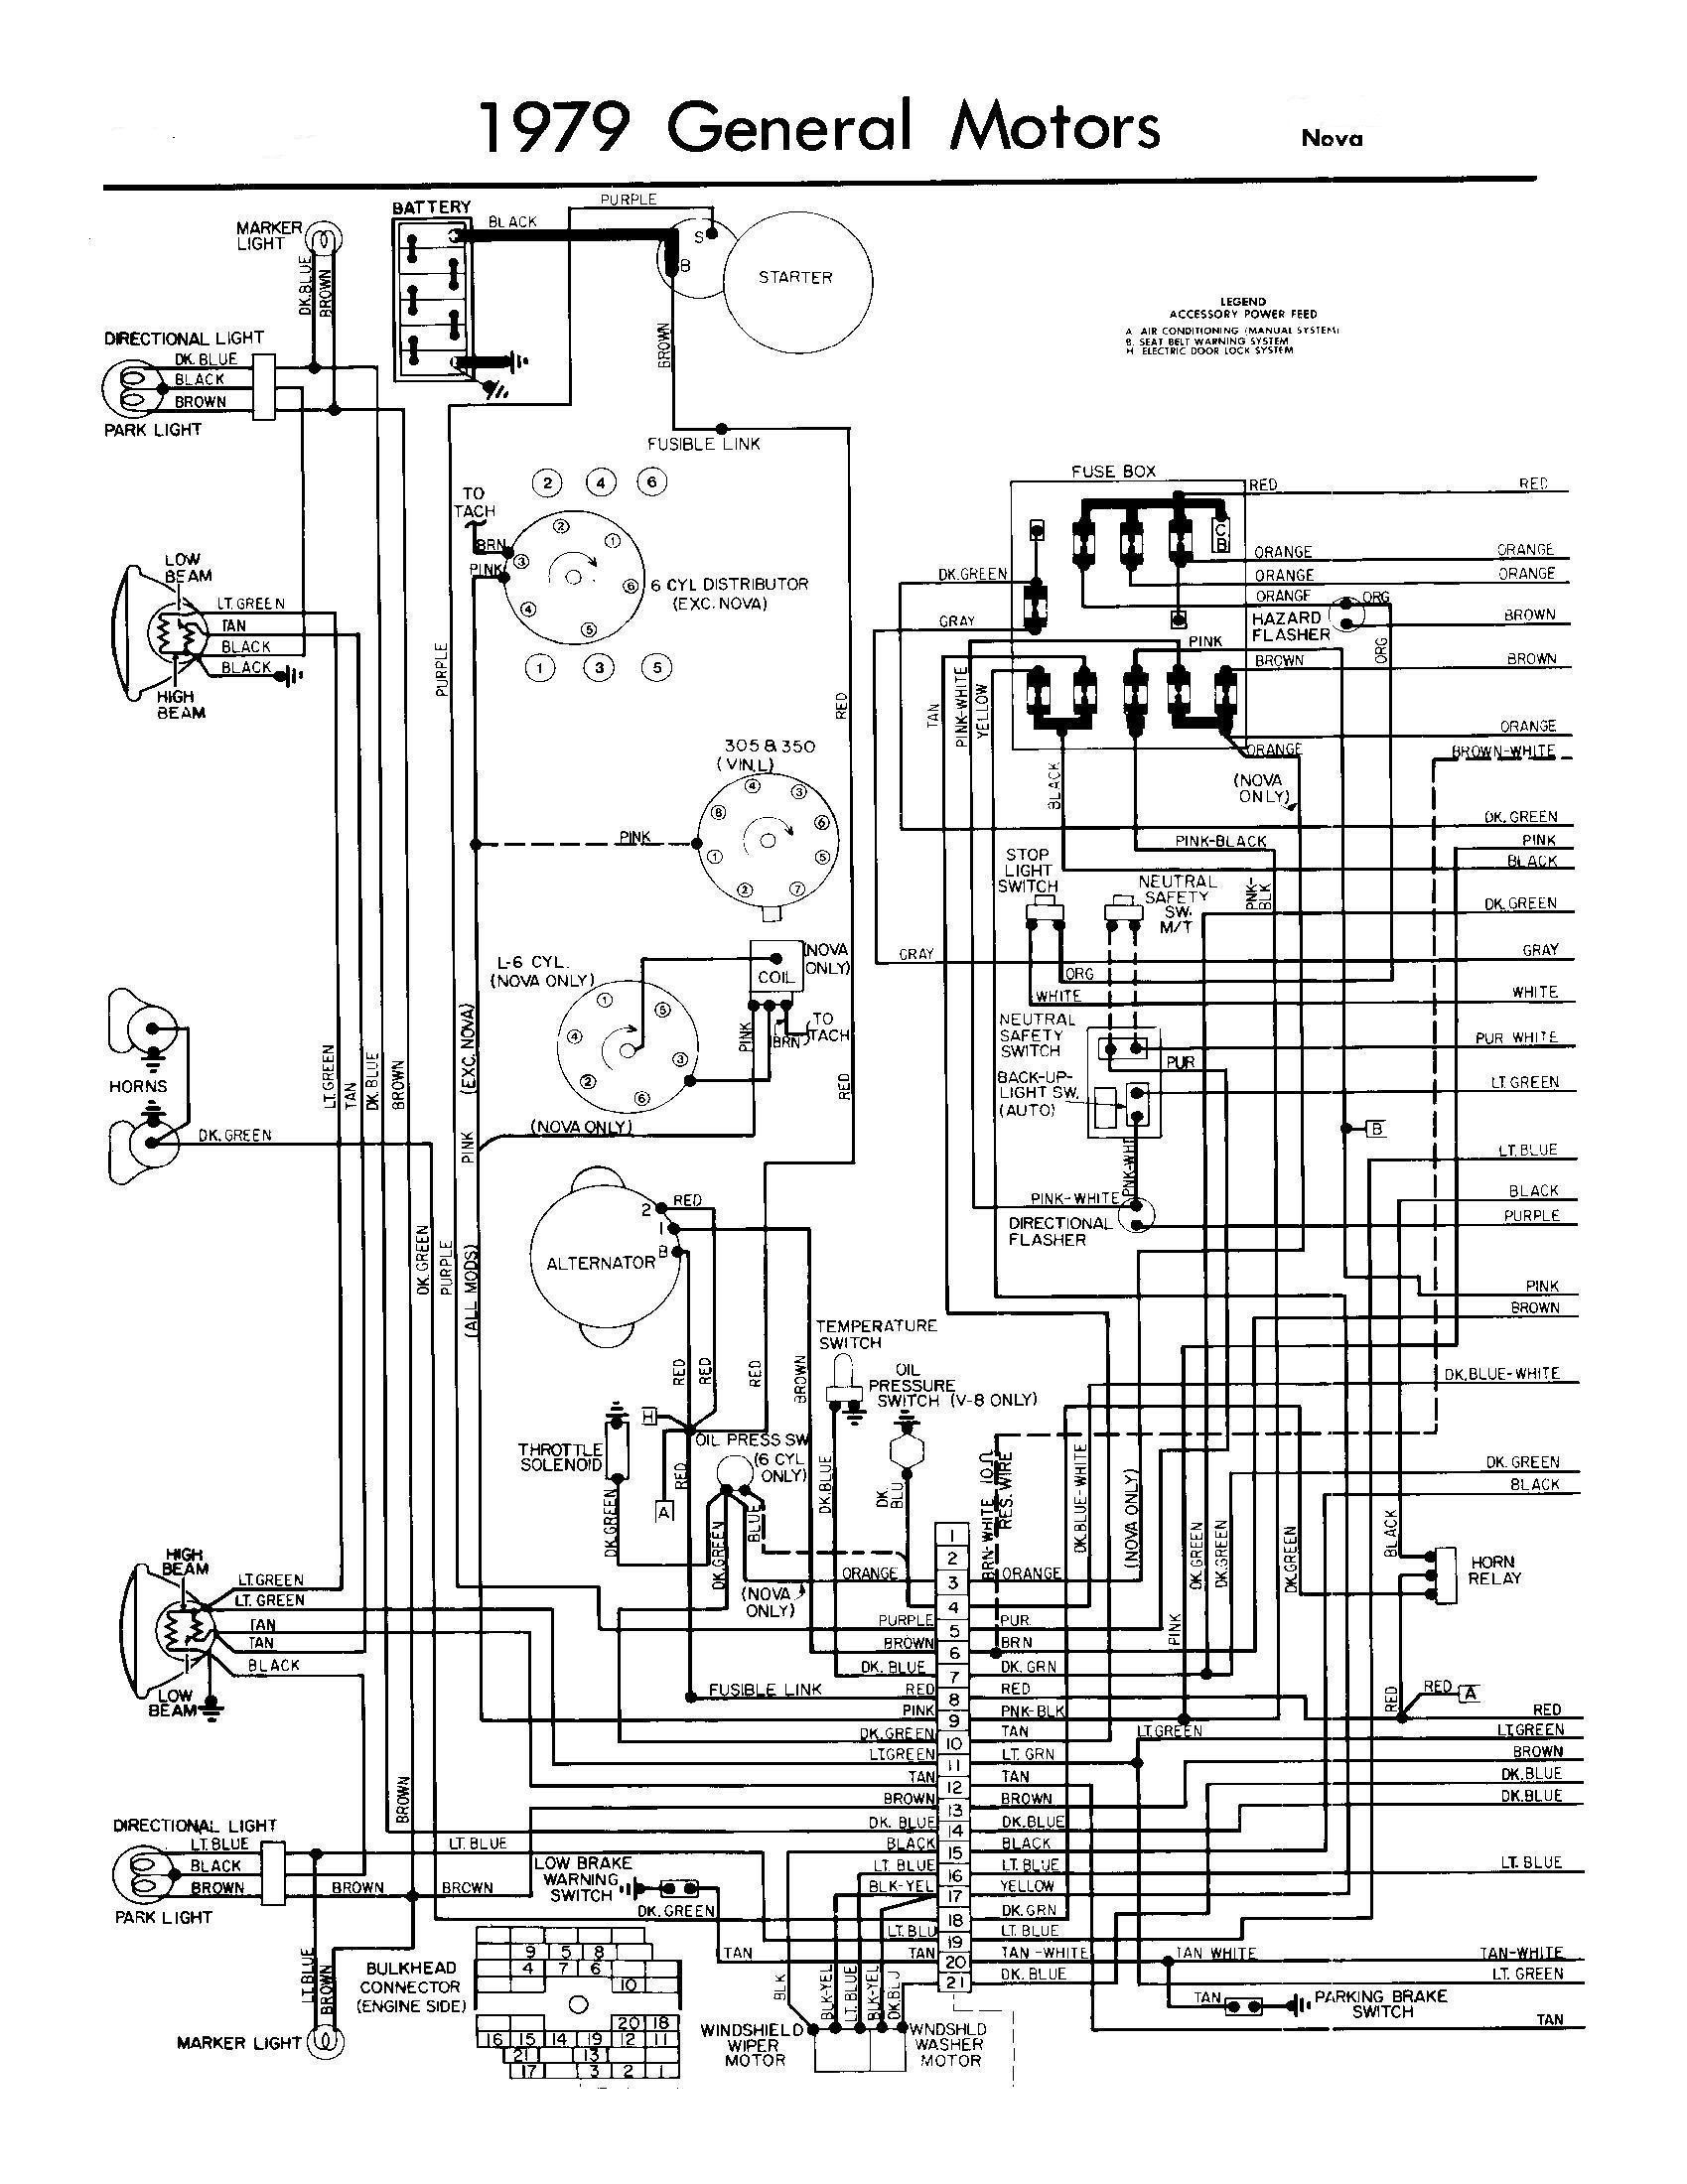 1994 Chevy Suburban Wiring Diagram Trusted Truck As Well Pictures Residential Rear Speakers